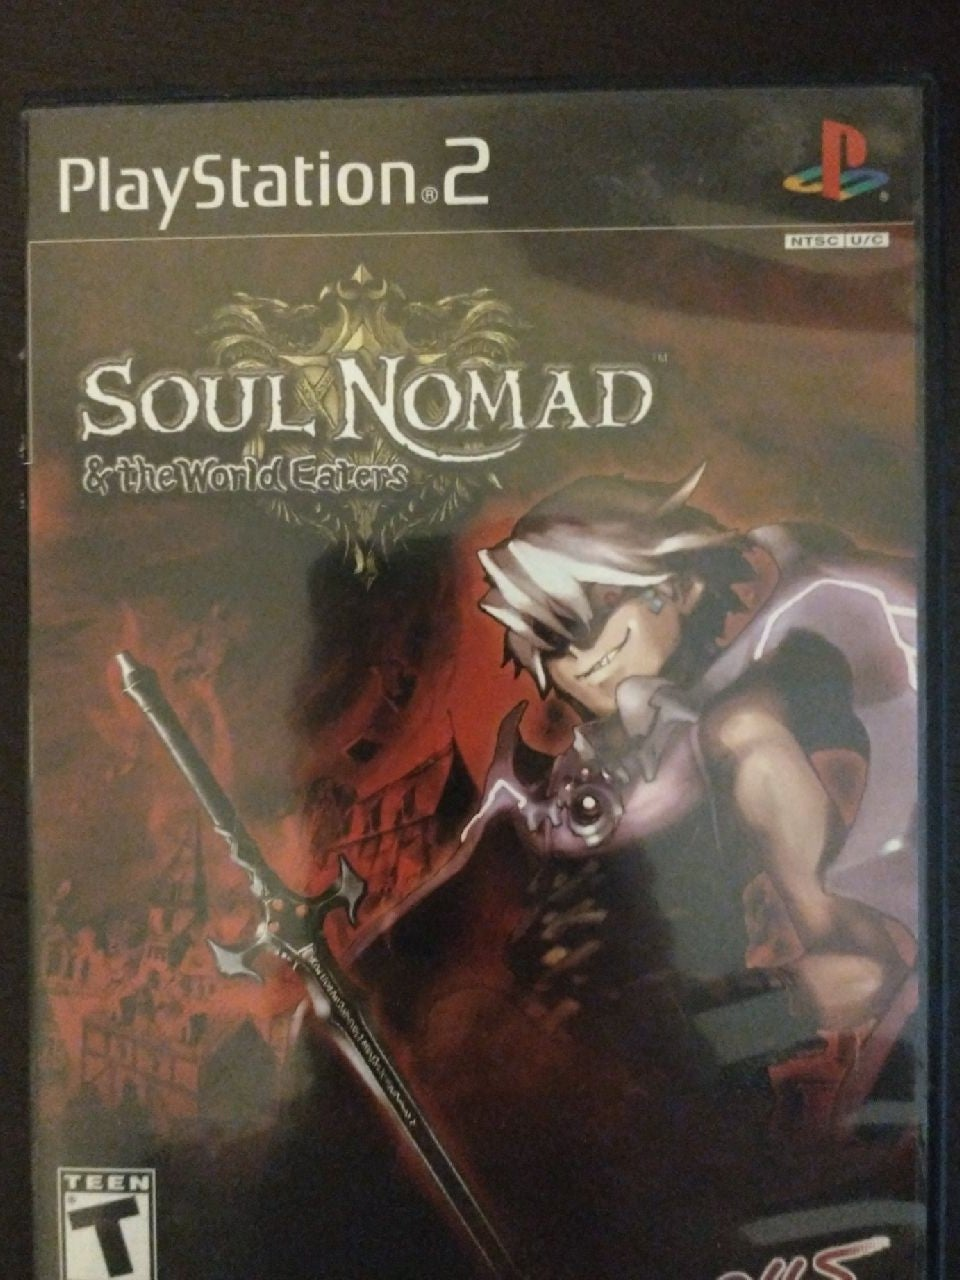 Soul Nomad & the World Eaters on Playsta